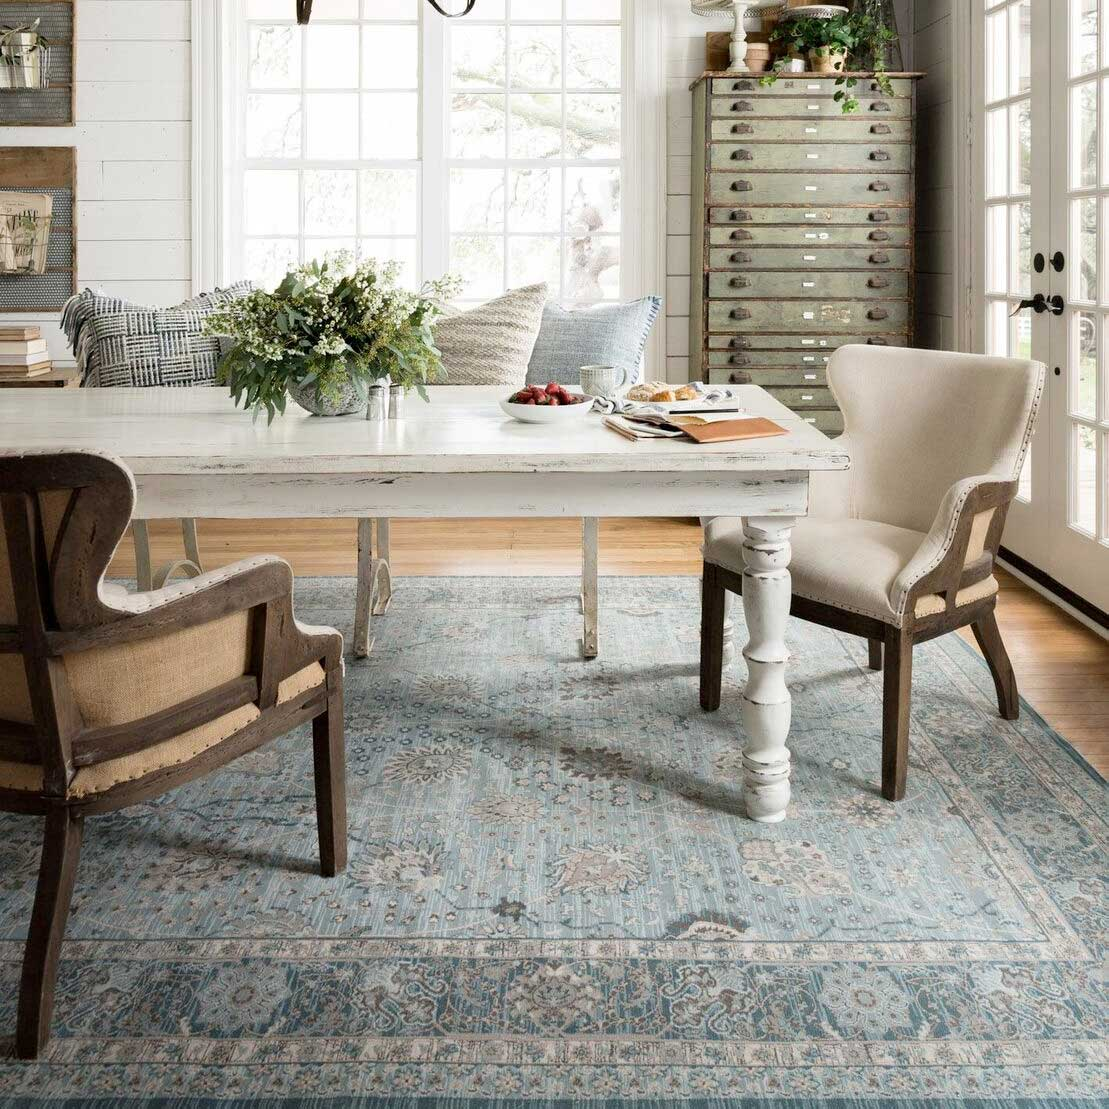 Magnolia Home Rugs By Joanna Gaines Loloi Rug Designer